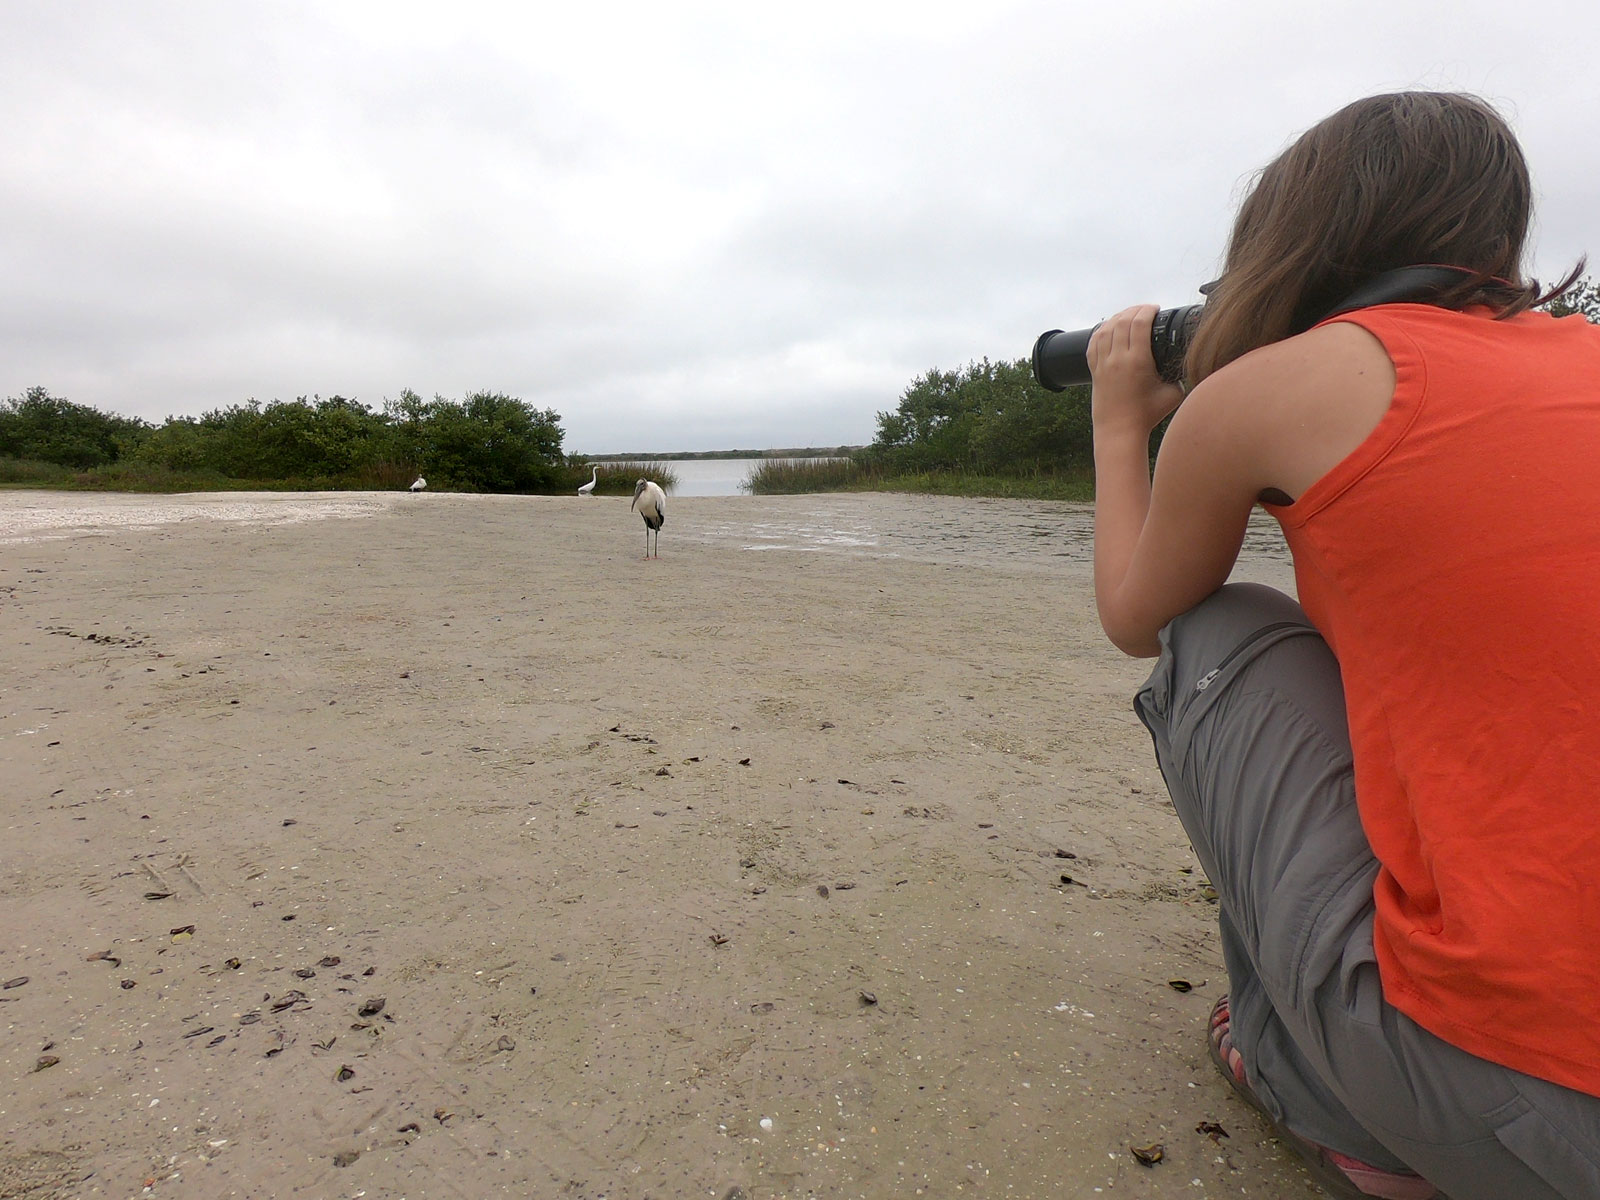 Girl using a camera to photograph a woodstork on beach of Anastasia State Park, Florida